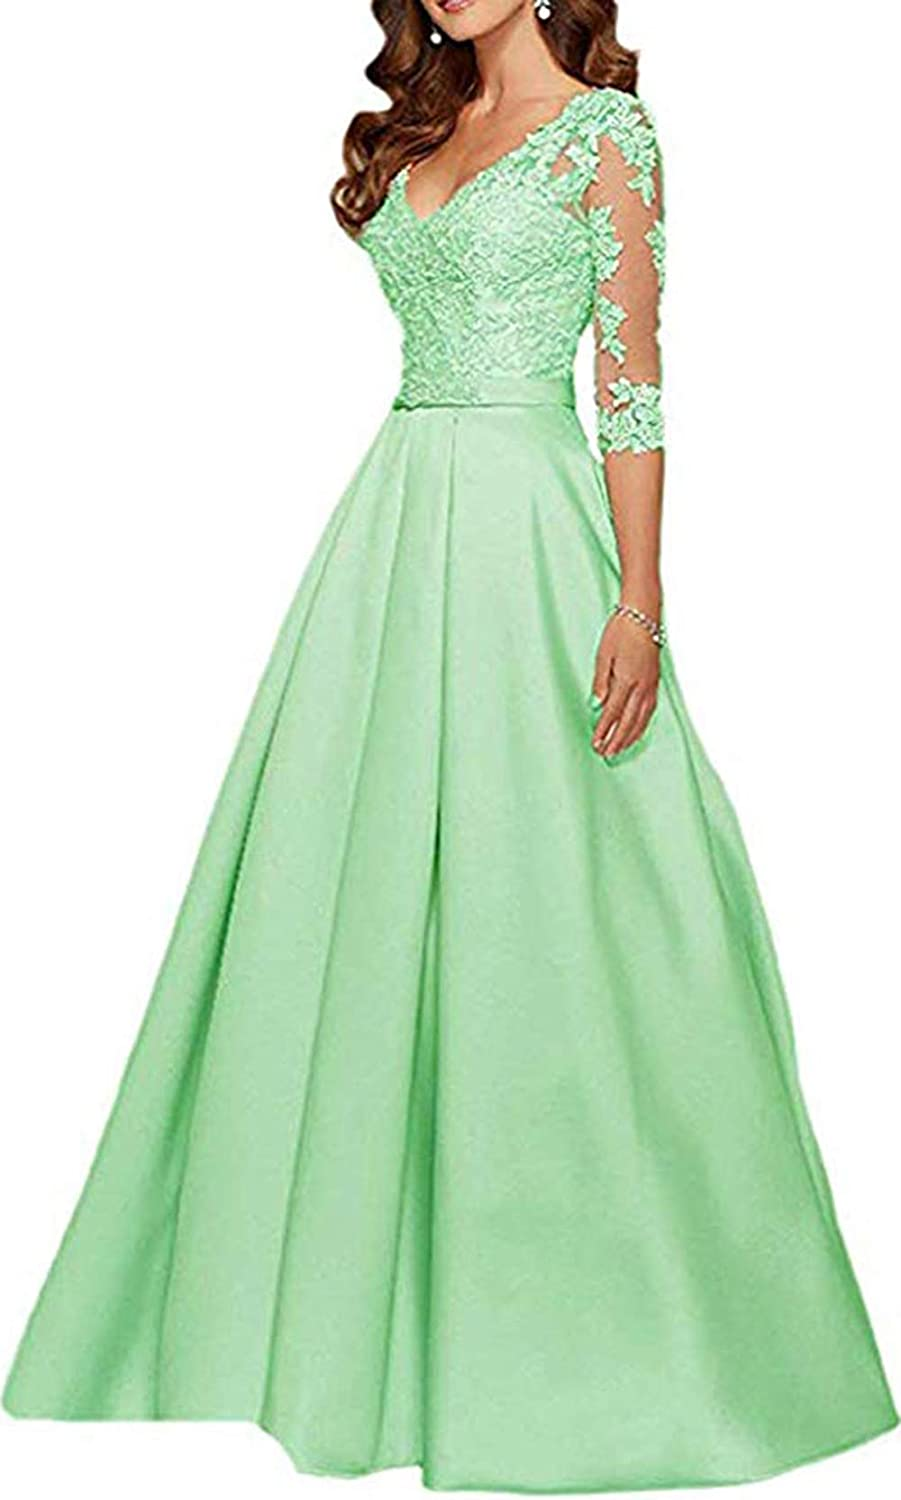 Sage Ri Yun Womens V Neck 3 4 Sleeves Prom Dresses Long 2019 Beaded Lace Mother of The Bride Dresses with Pockets